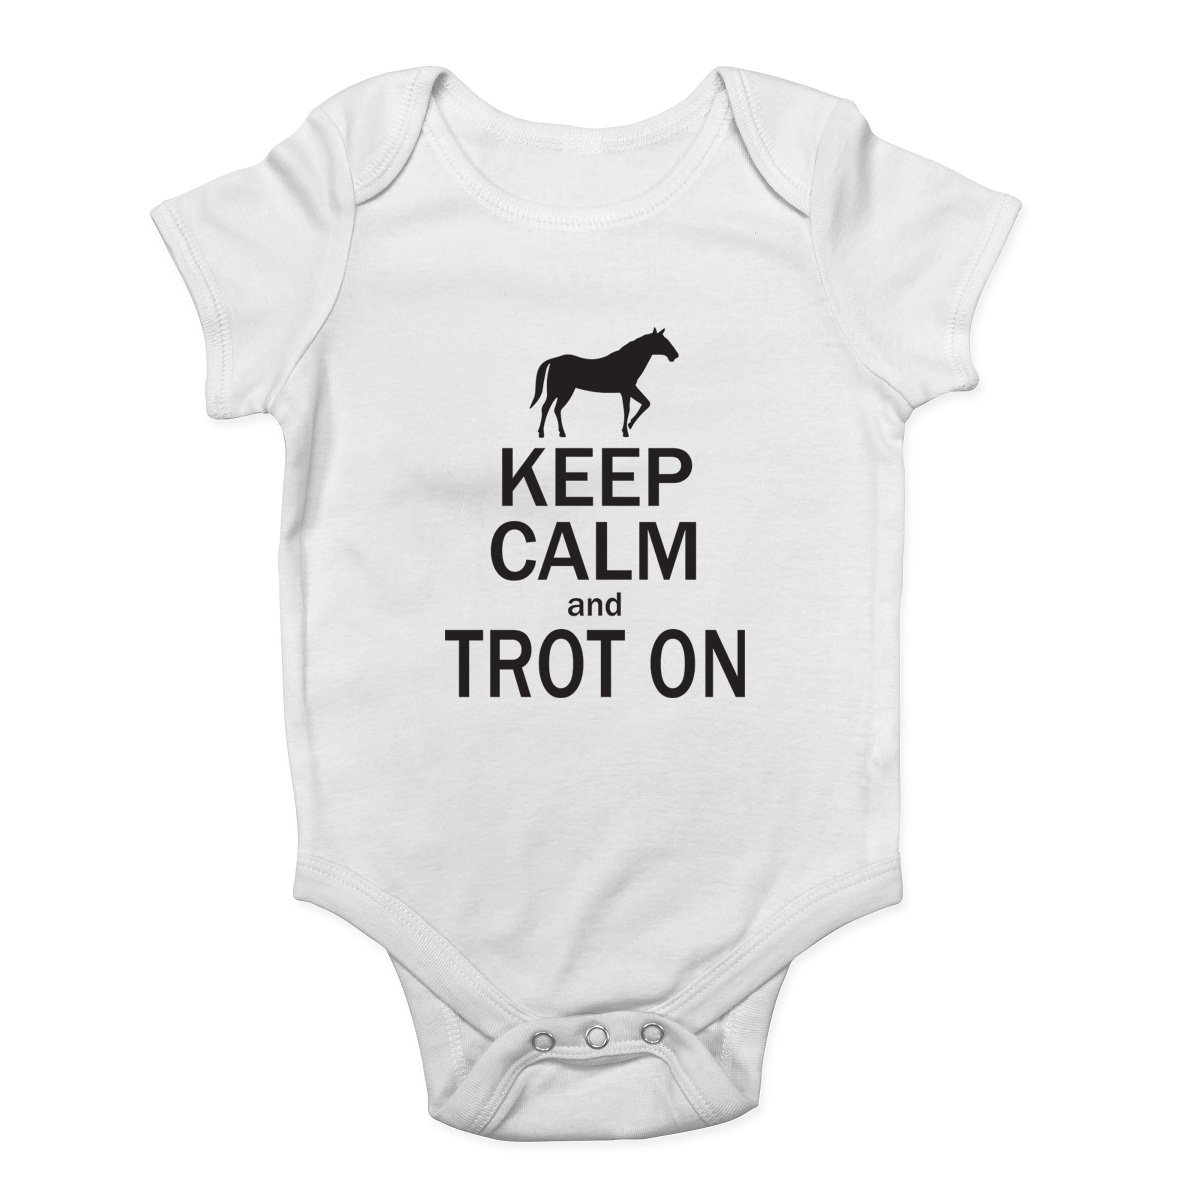 Shopagift Keep Calm and Trot On Boys and Girls Baby Vest Bodysuit